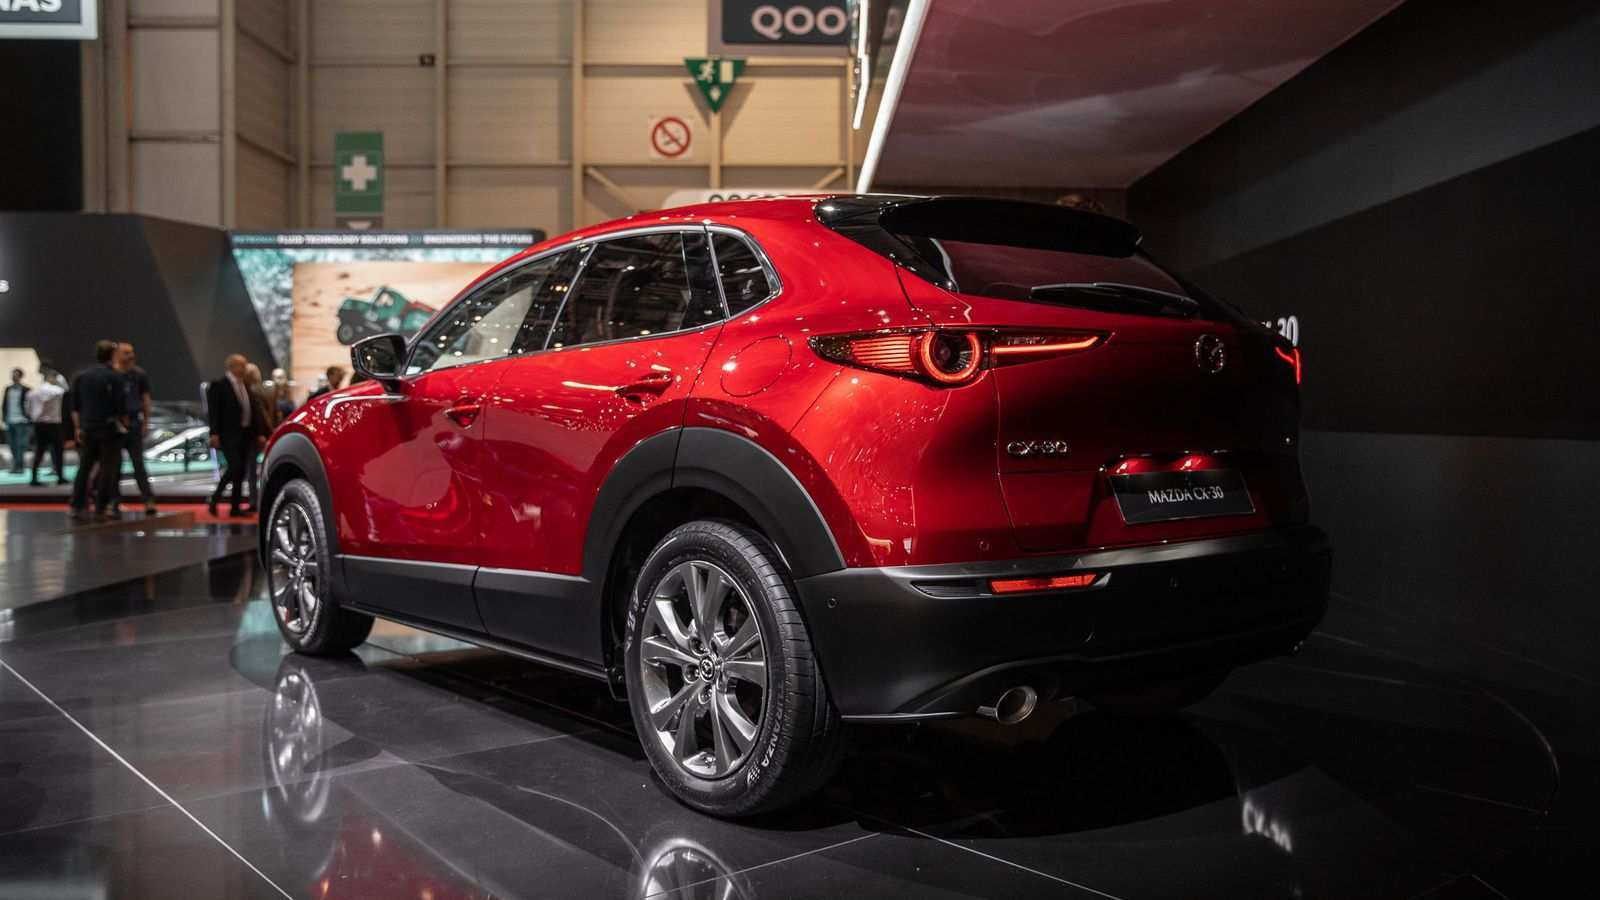 79 All New 2020 Mazda Cx 30 Price Configurations